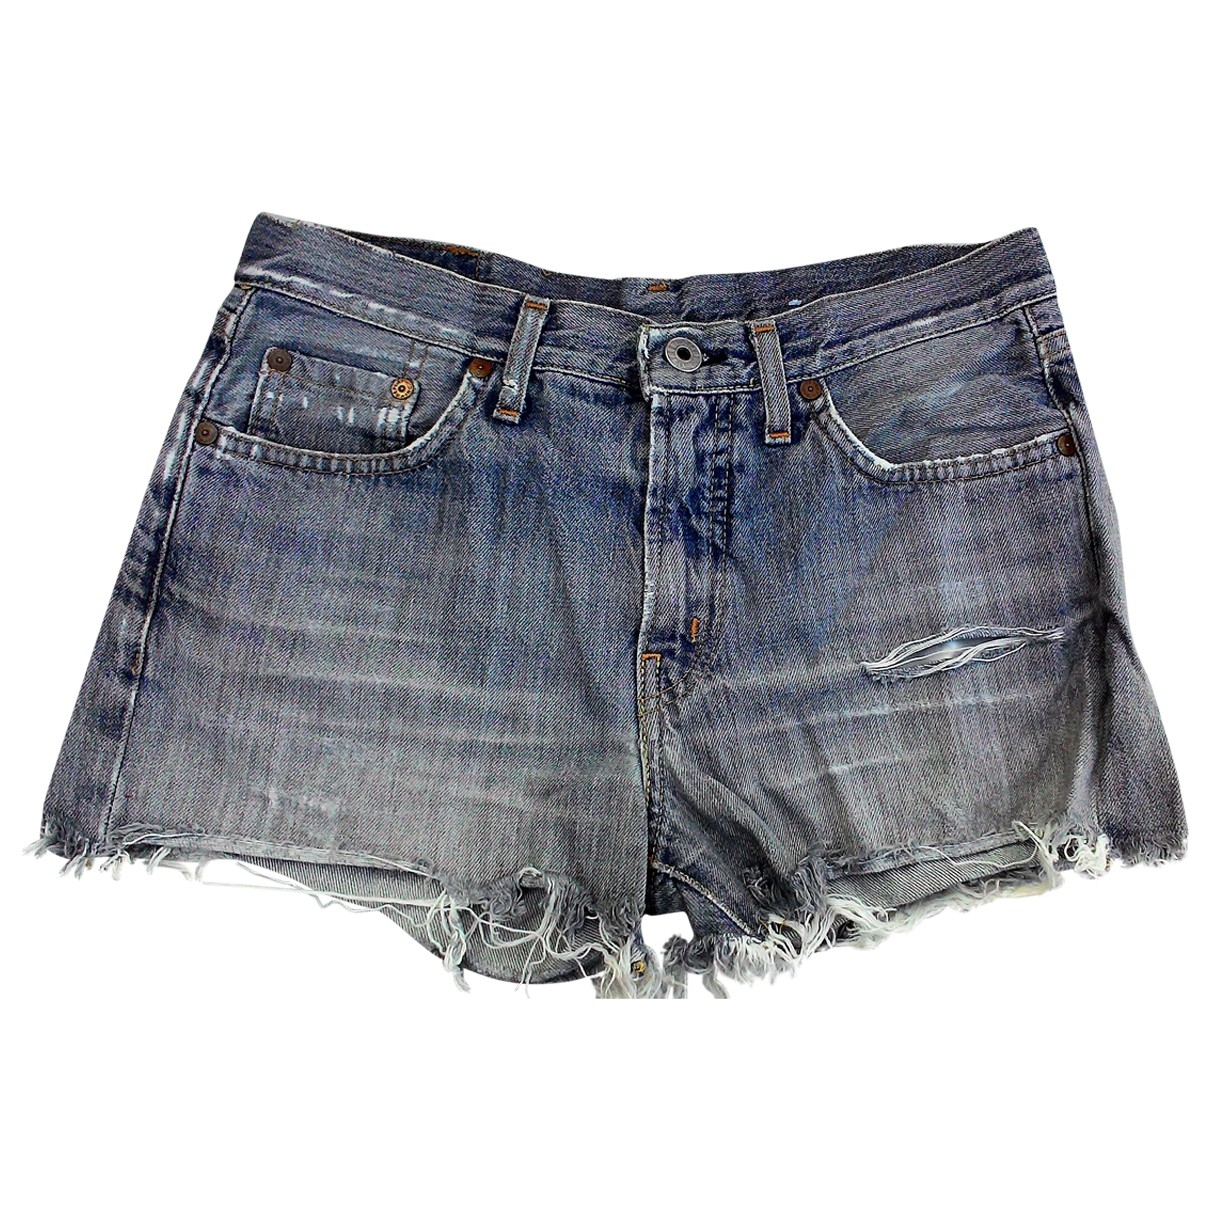 Replay \N Blue Denim - Jeans Shorts for Women M International